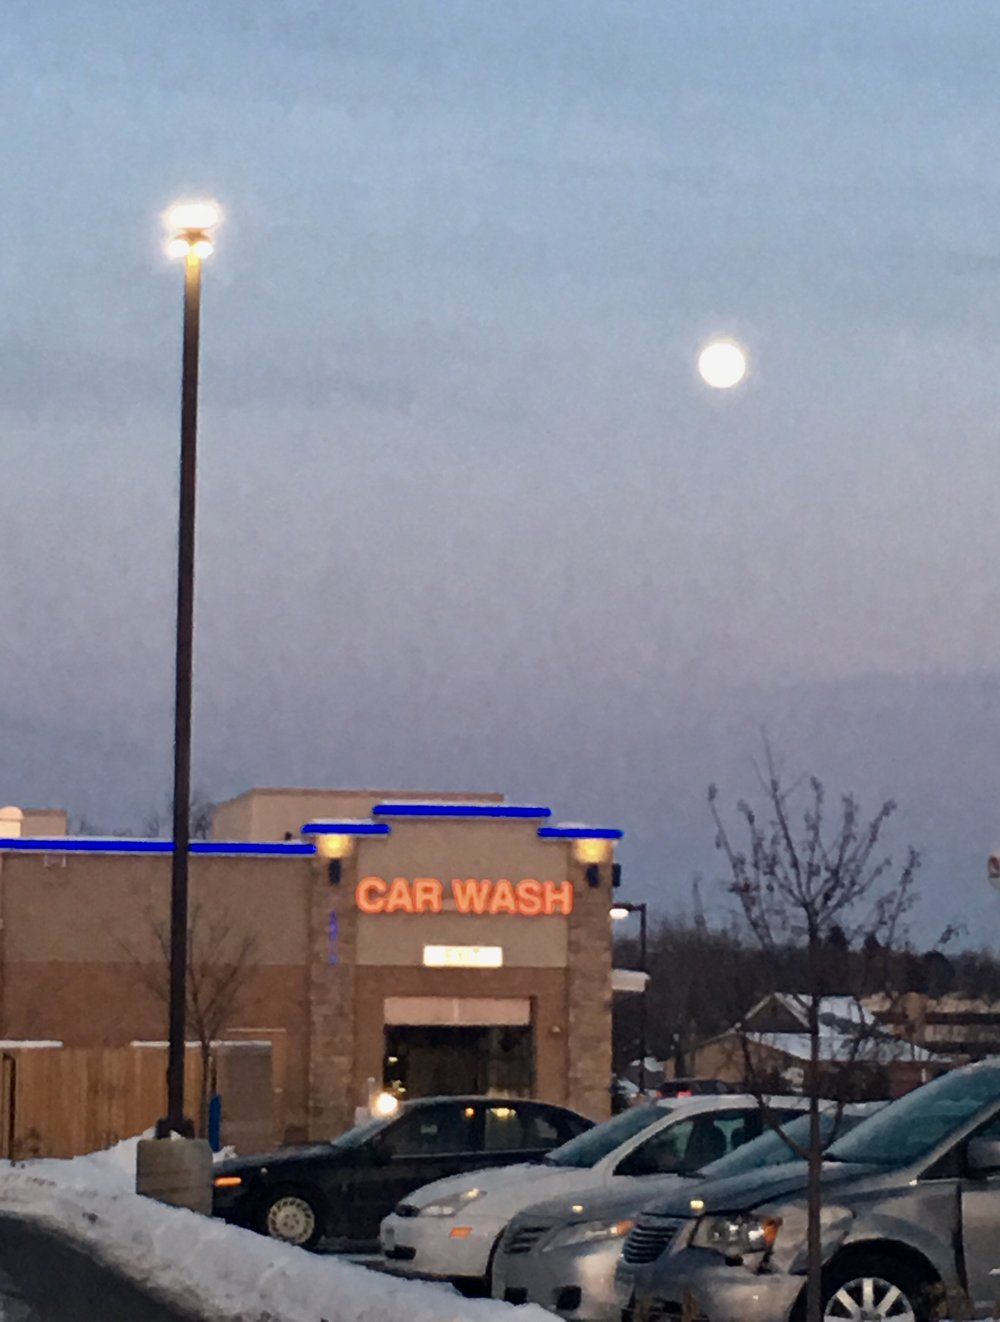 The super snow moon is also called the moon over the car wash.